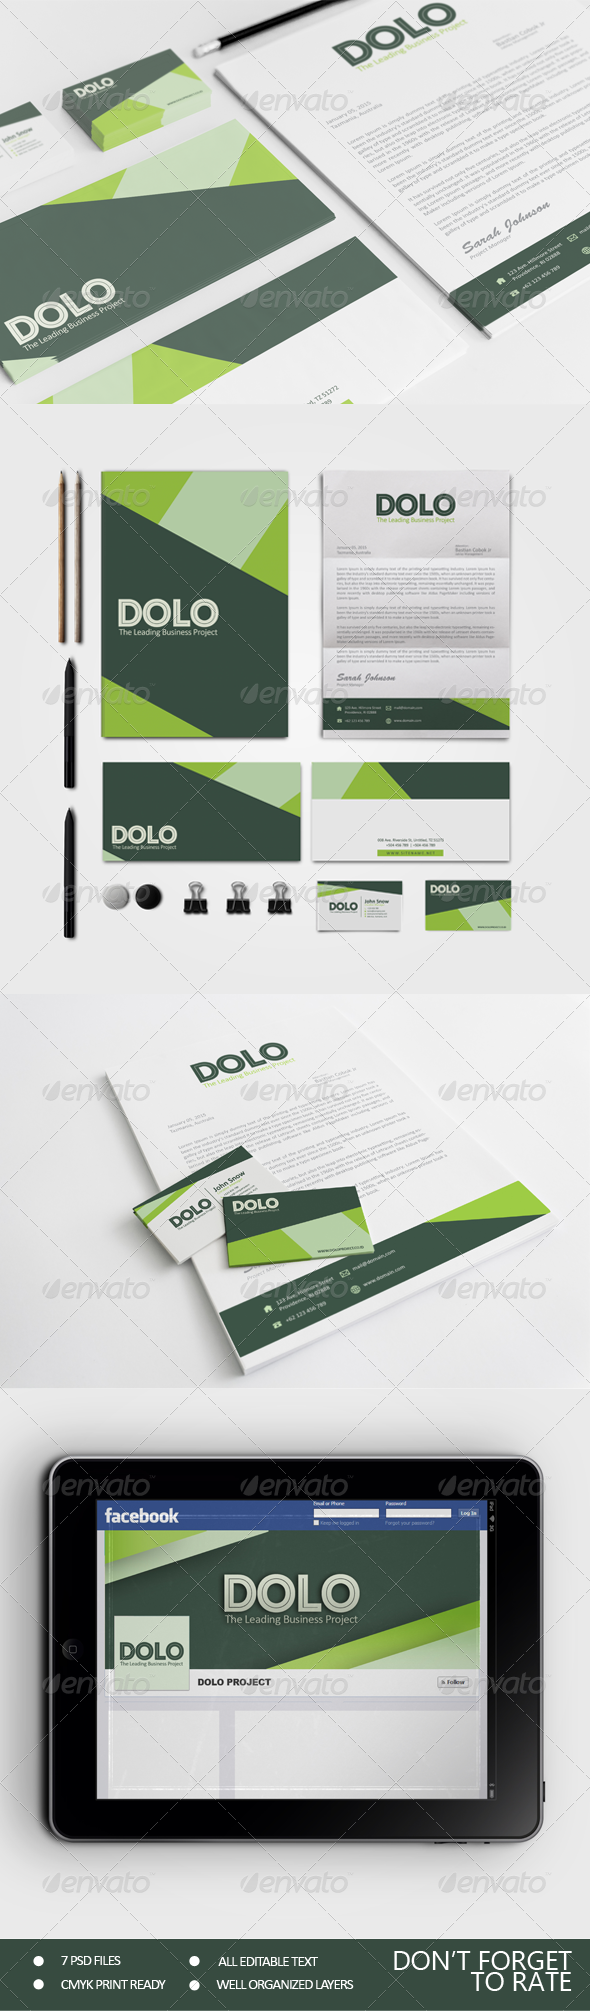 GraphicRiver Dolo Corporate Identity 7400264